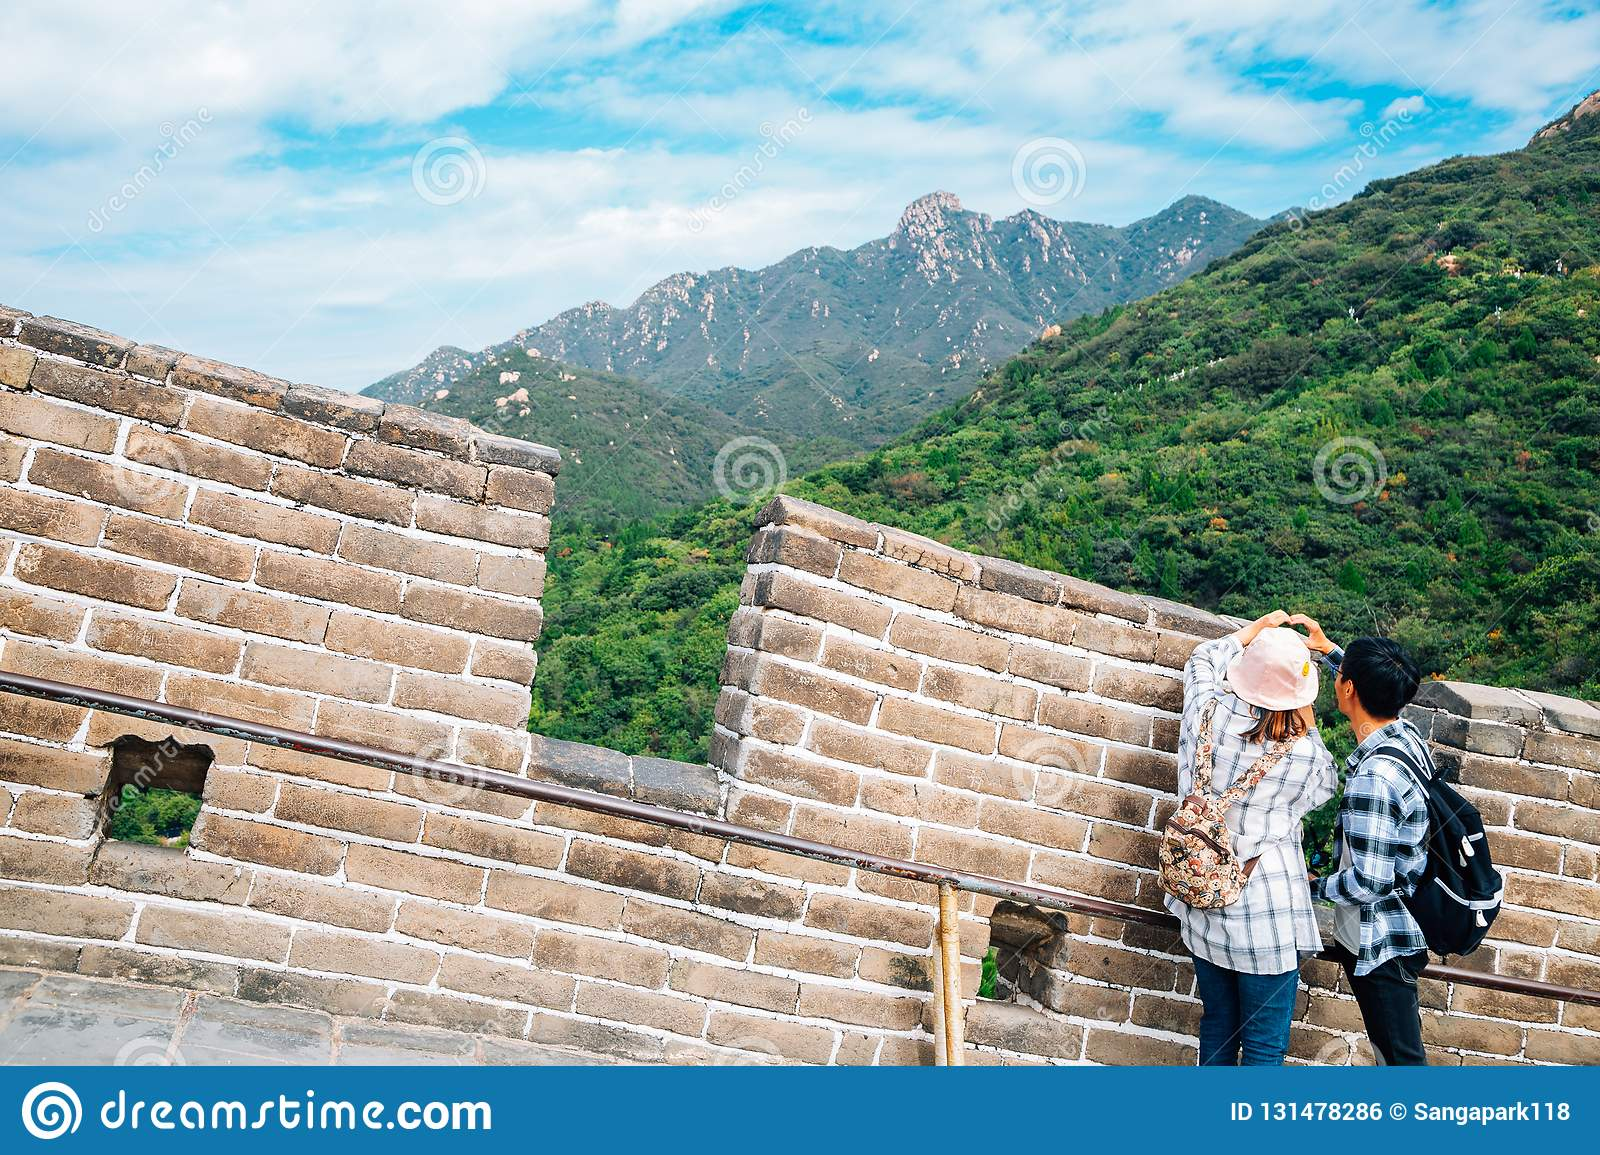 The Great Wall and tourist people in Beijing, China